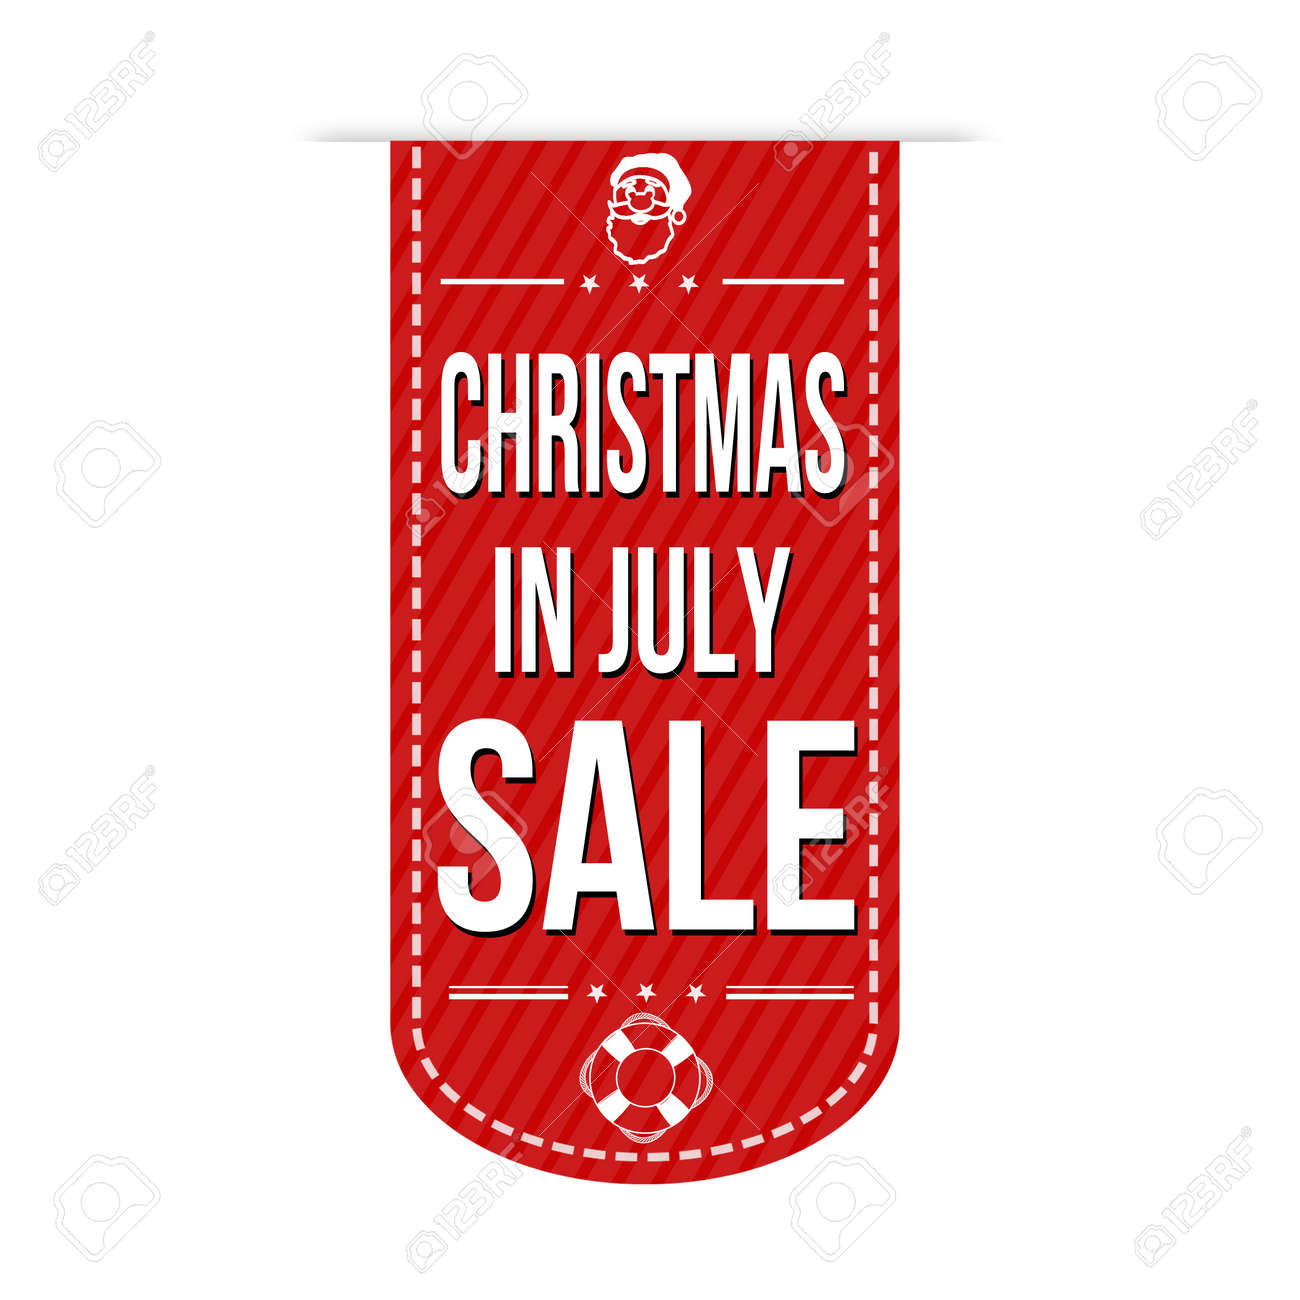 Christmas In July Clipart Free.Christmas In July Sale Banner Design Over A White Background